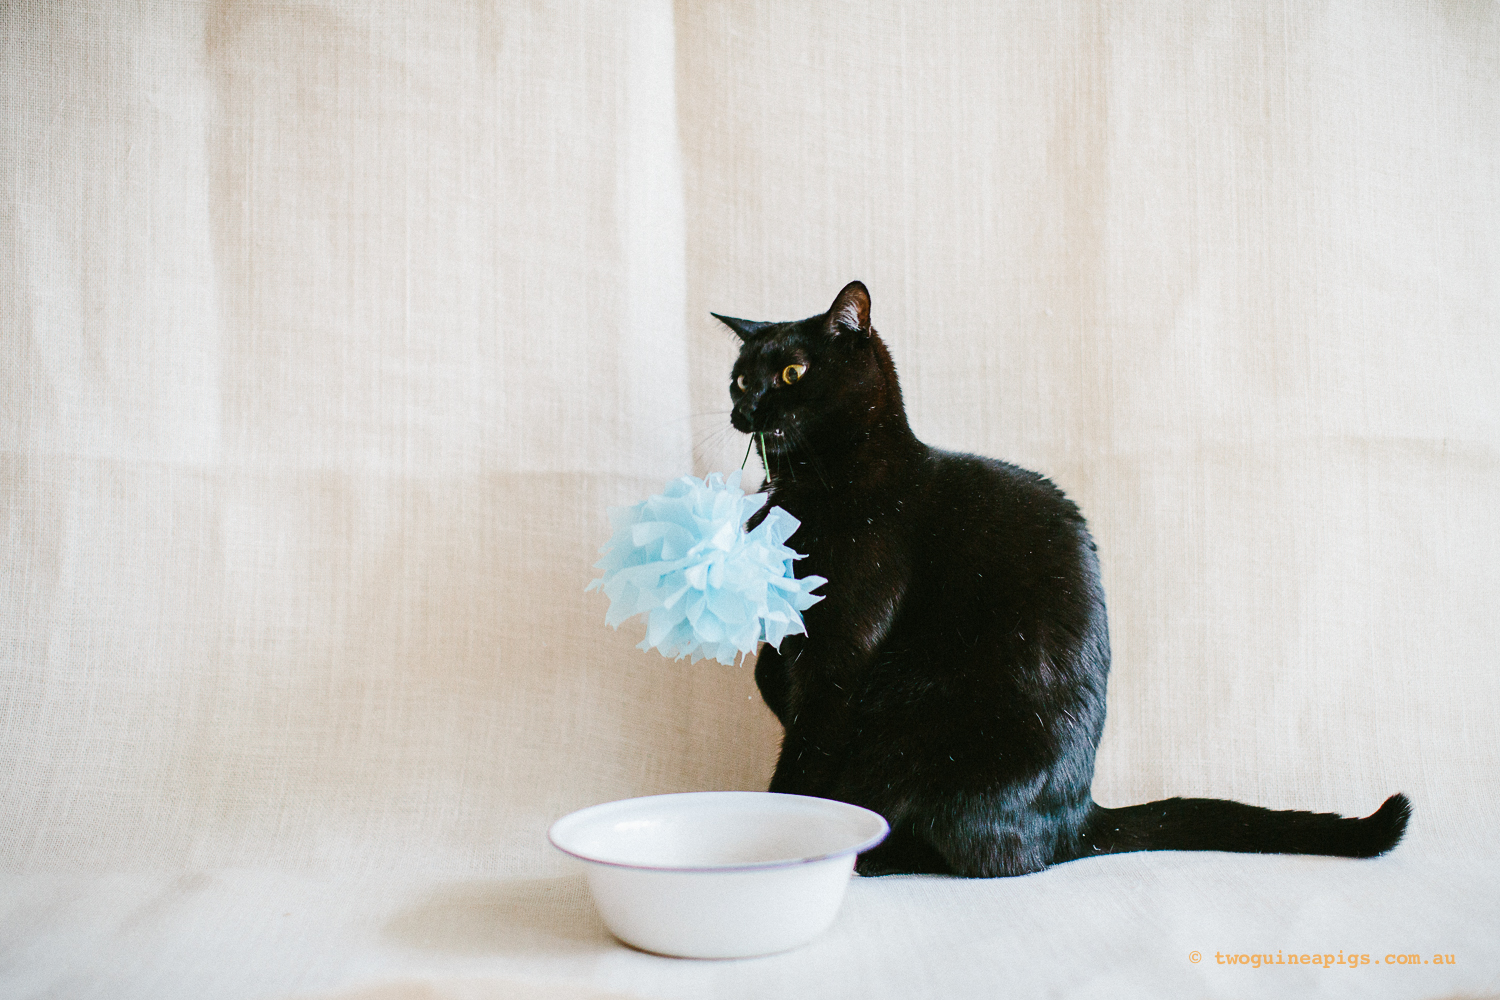 twoguineapigs_pet_photography_ruby_slipper_cat_floral_series_TEST_1500-41.jpg